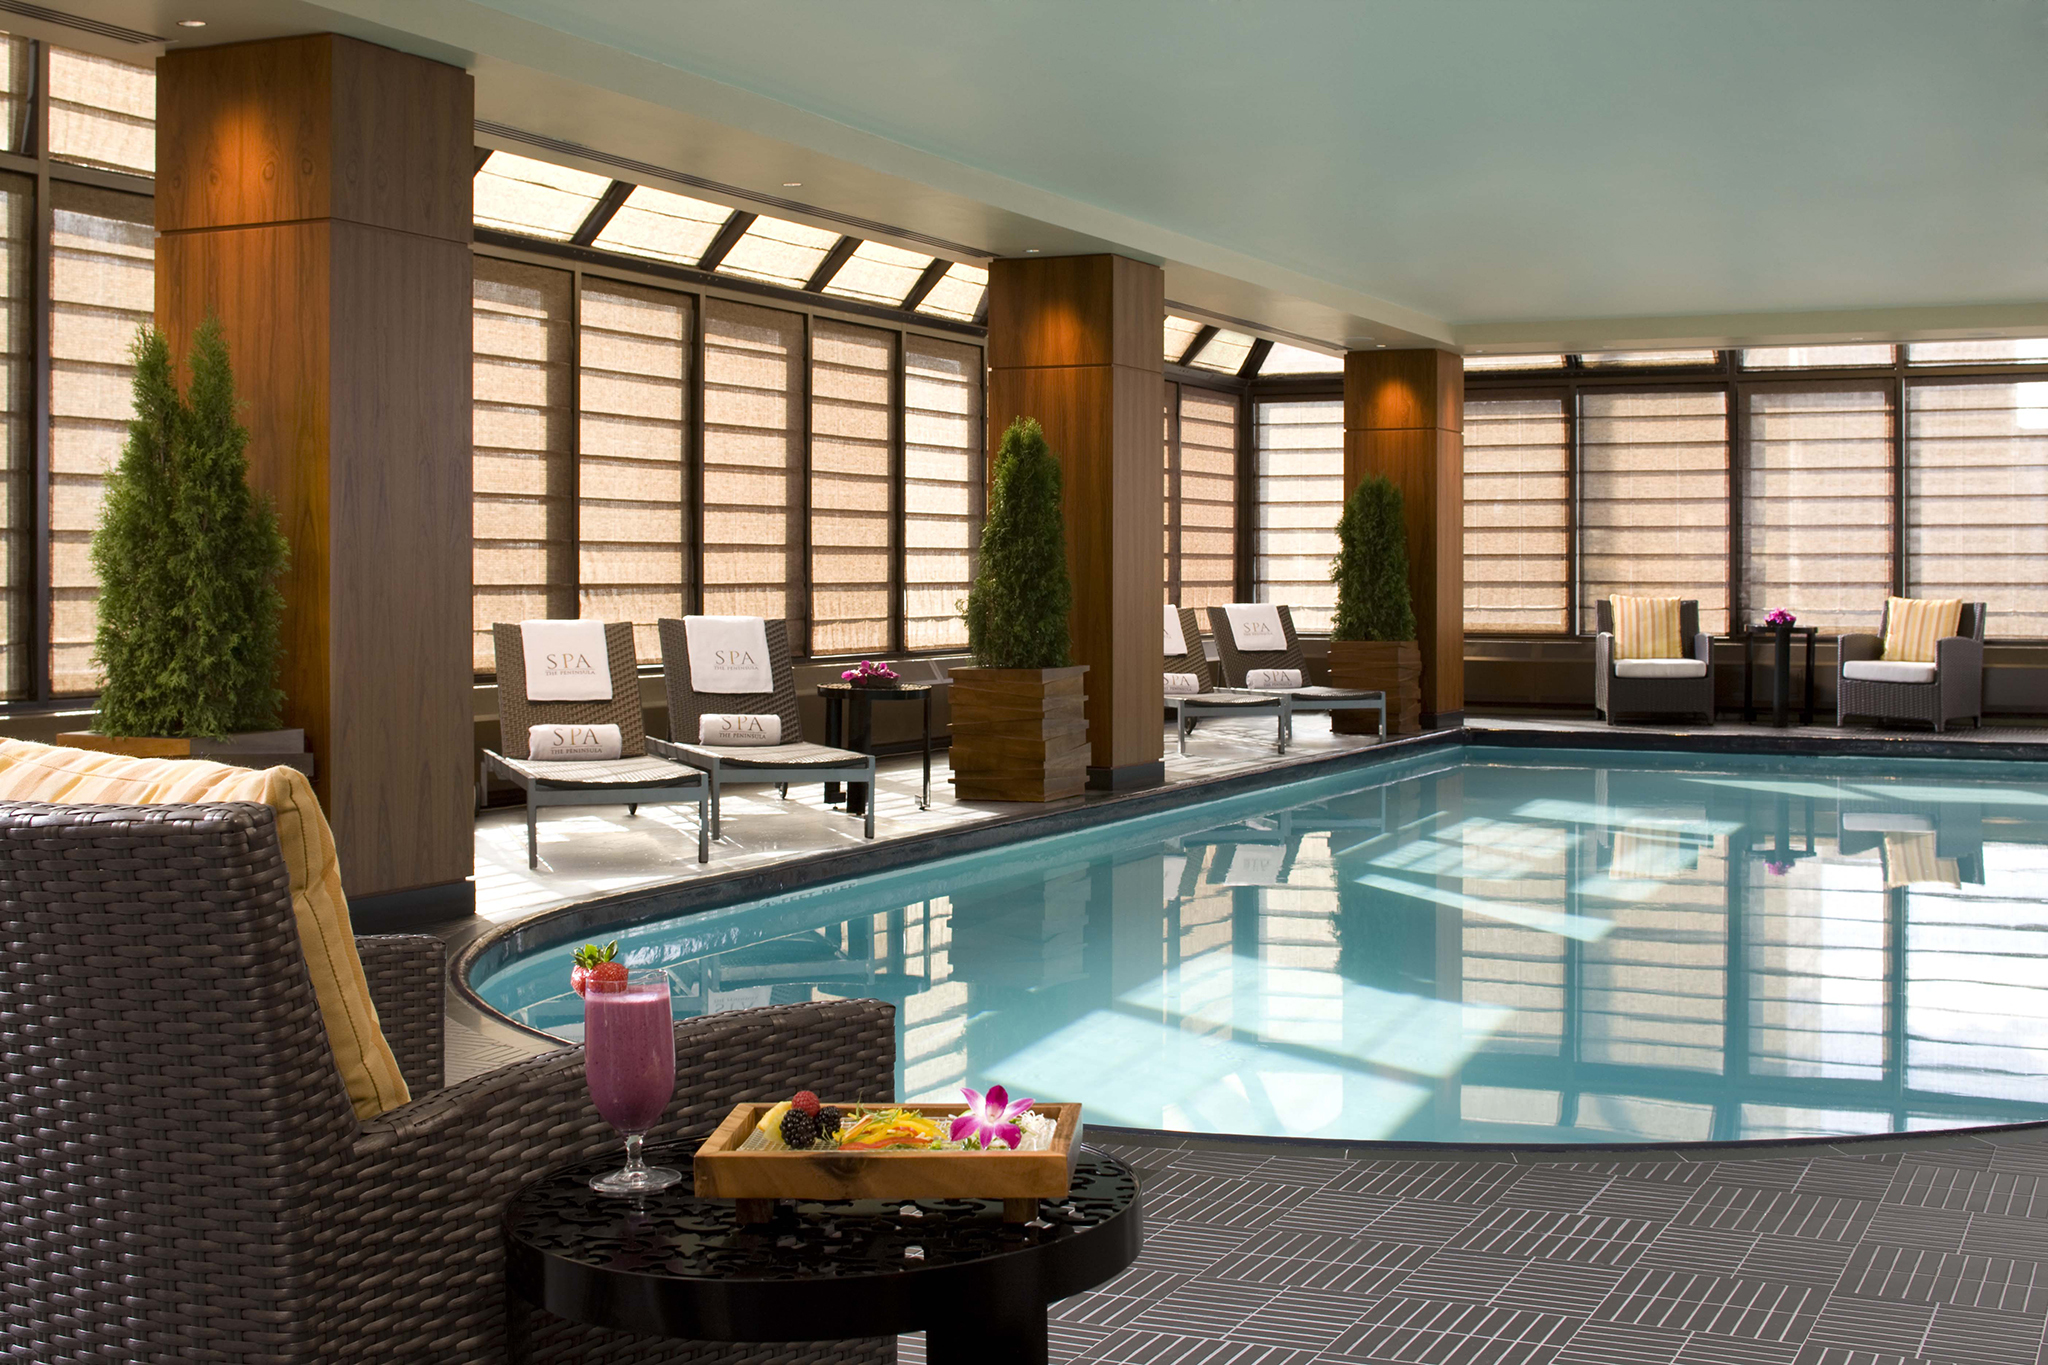 Best hotels with indoor pools in spas or on rooftops in NYC